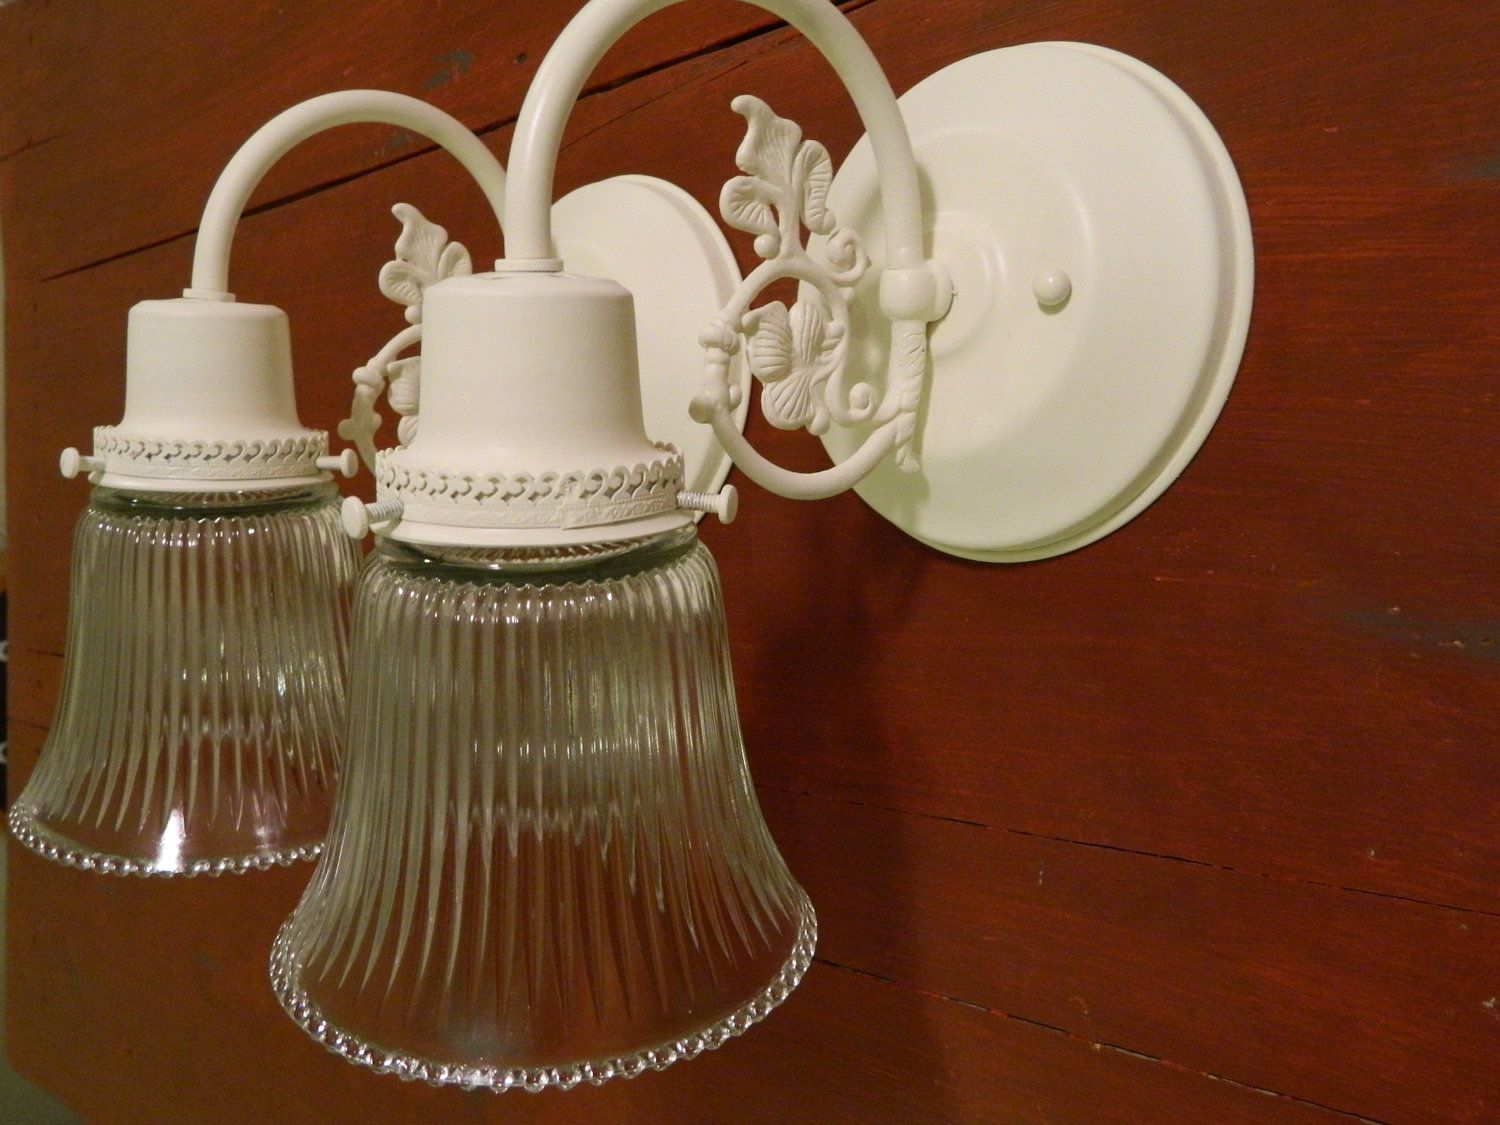 Upcycled Pair Of Cream Shabby Chic Ornate Wall Sconces Bathroom Light Vanity Lights Electric Wall Sconces Wall Sconce Light Bathroom Sconce Lighting Wall Sconce Lighting Bathroom Wall Sconces